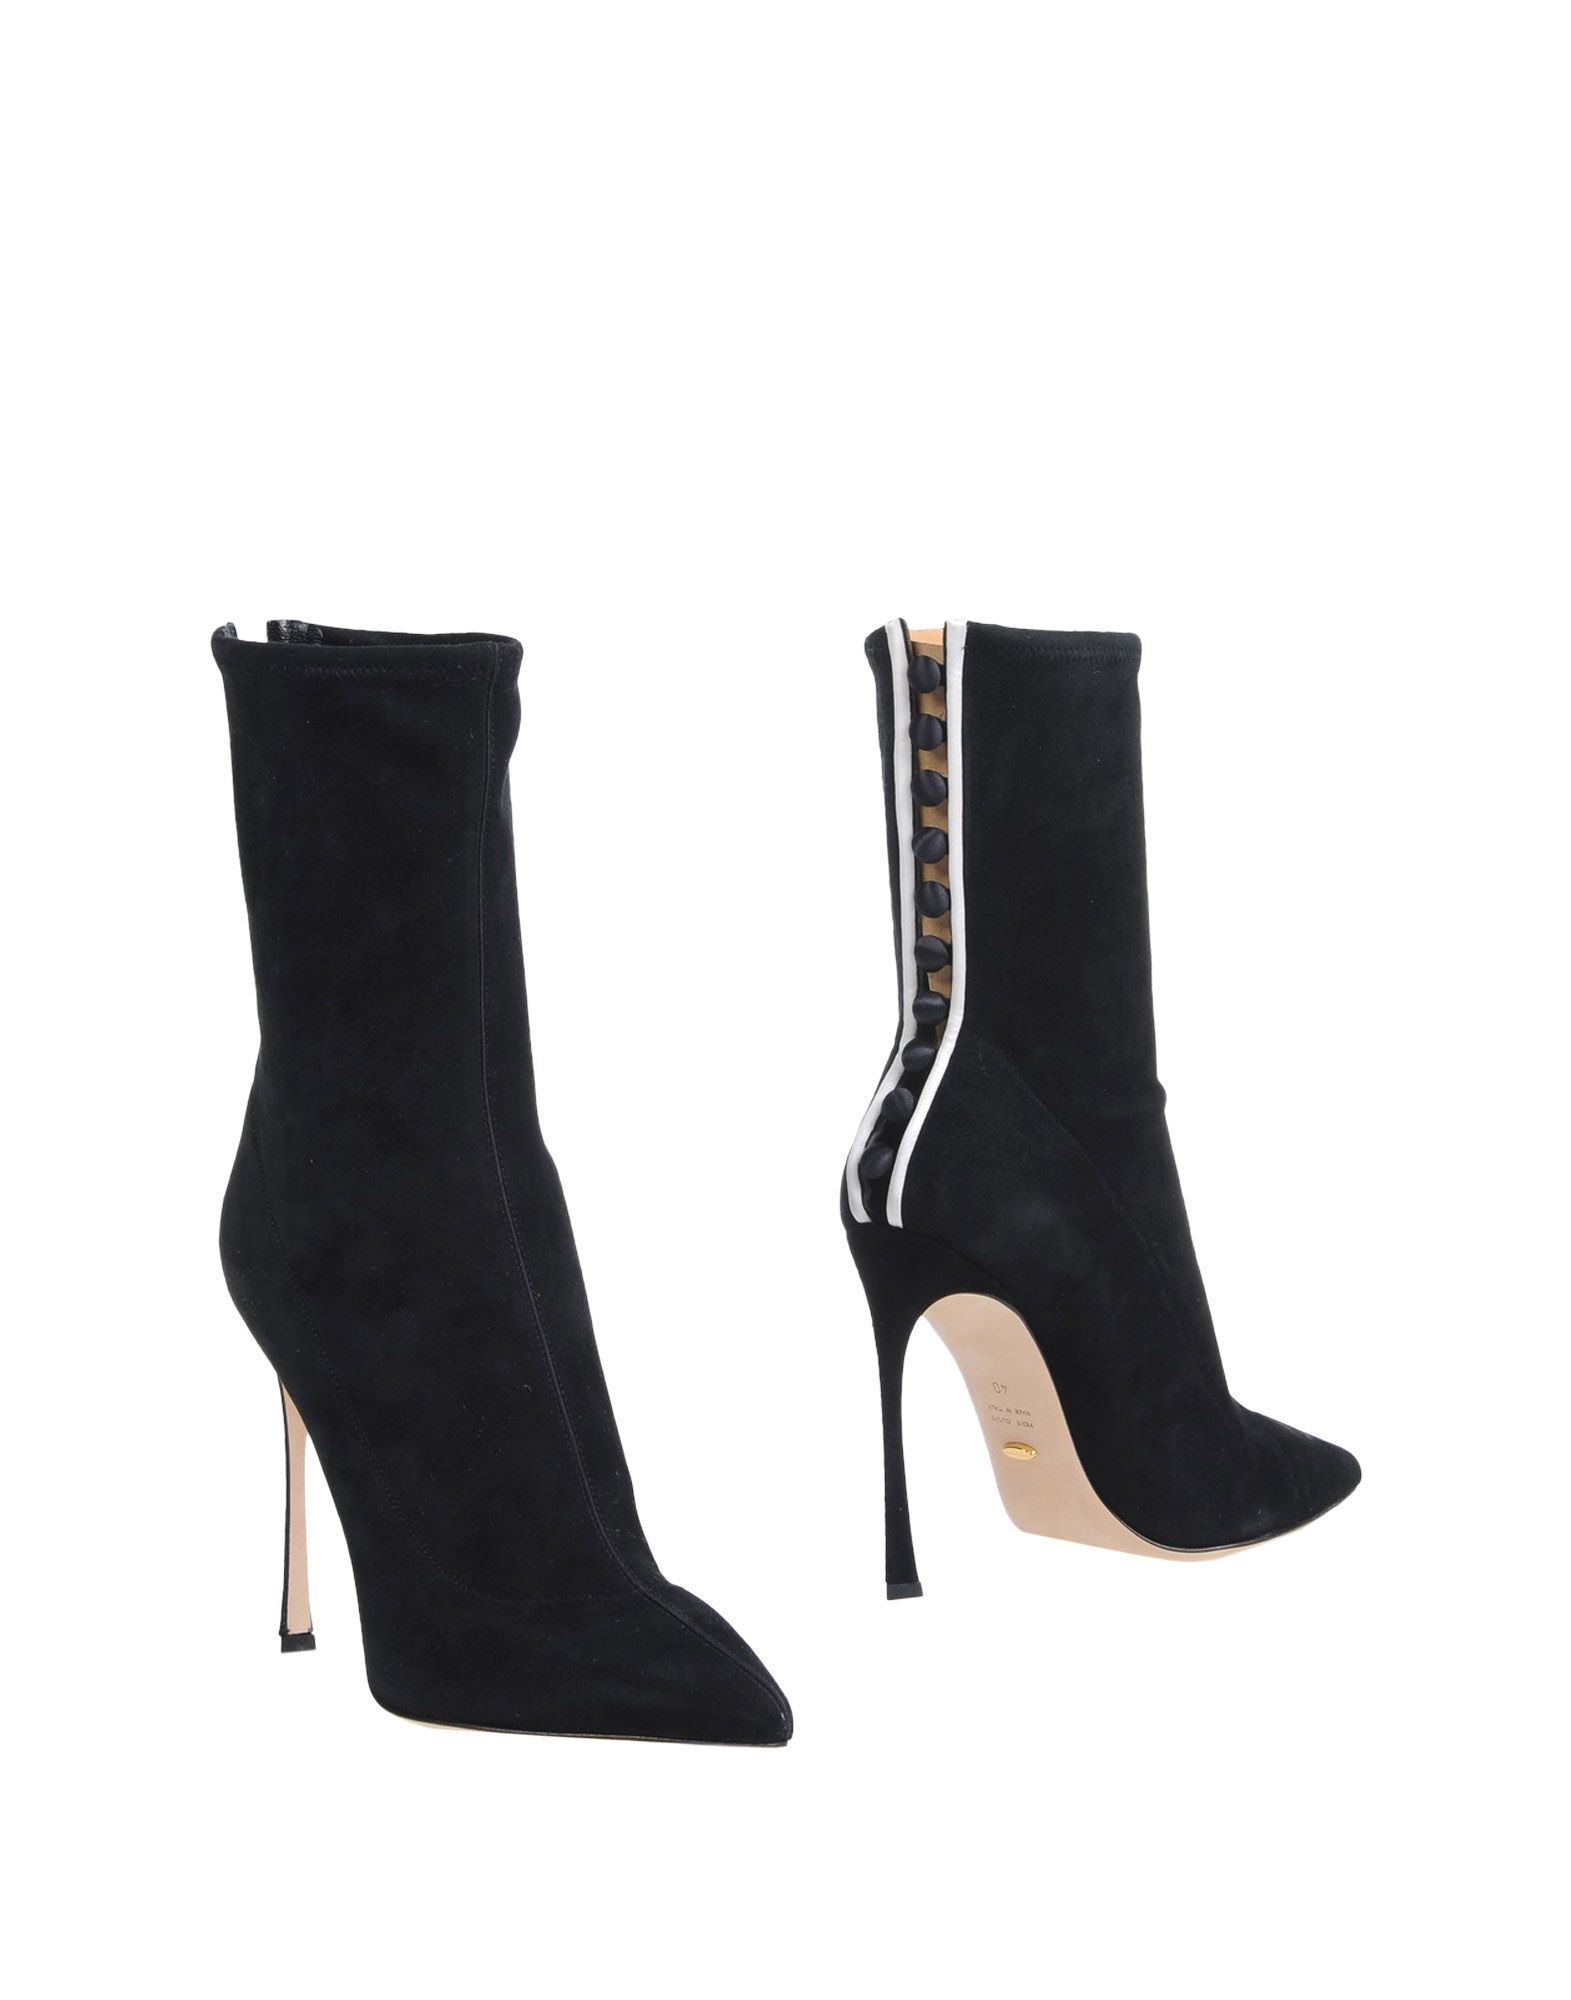 Sergio Rossi Ankle Boot - Women Sergio Rossi Ankle Australia Boots online on  Australia Ankle - 11198556CW 4e37dc